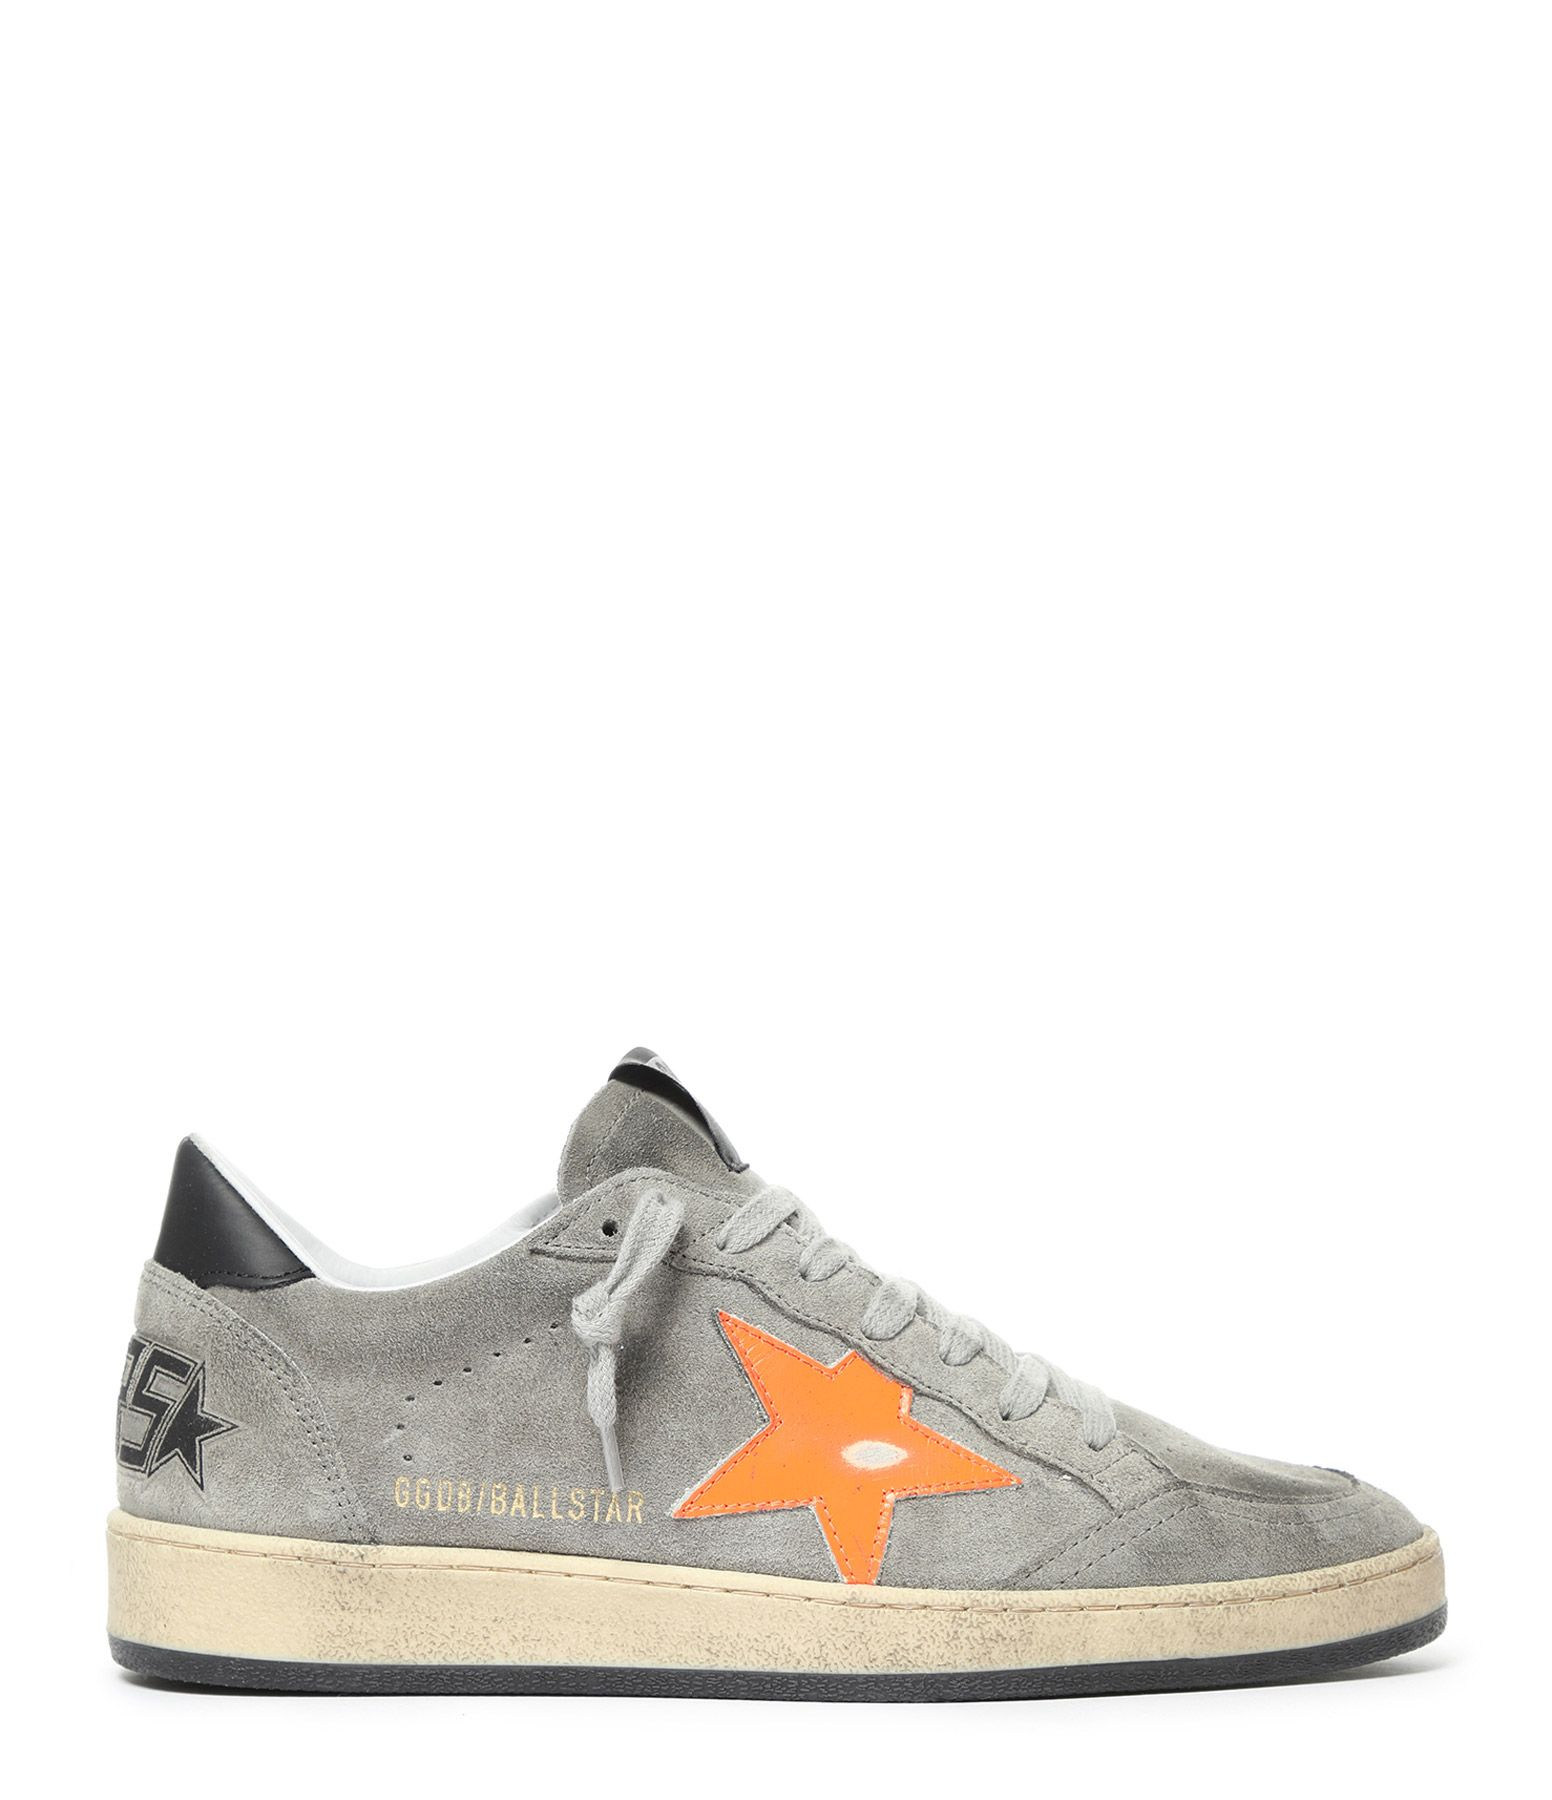 converse homme fluo